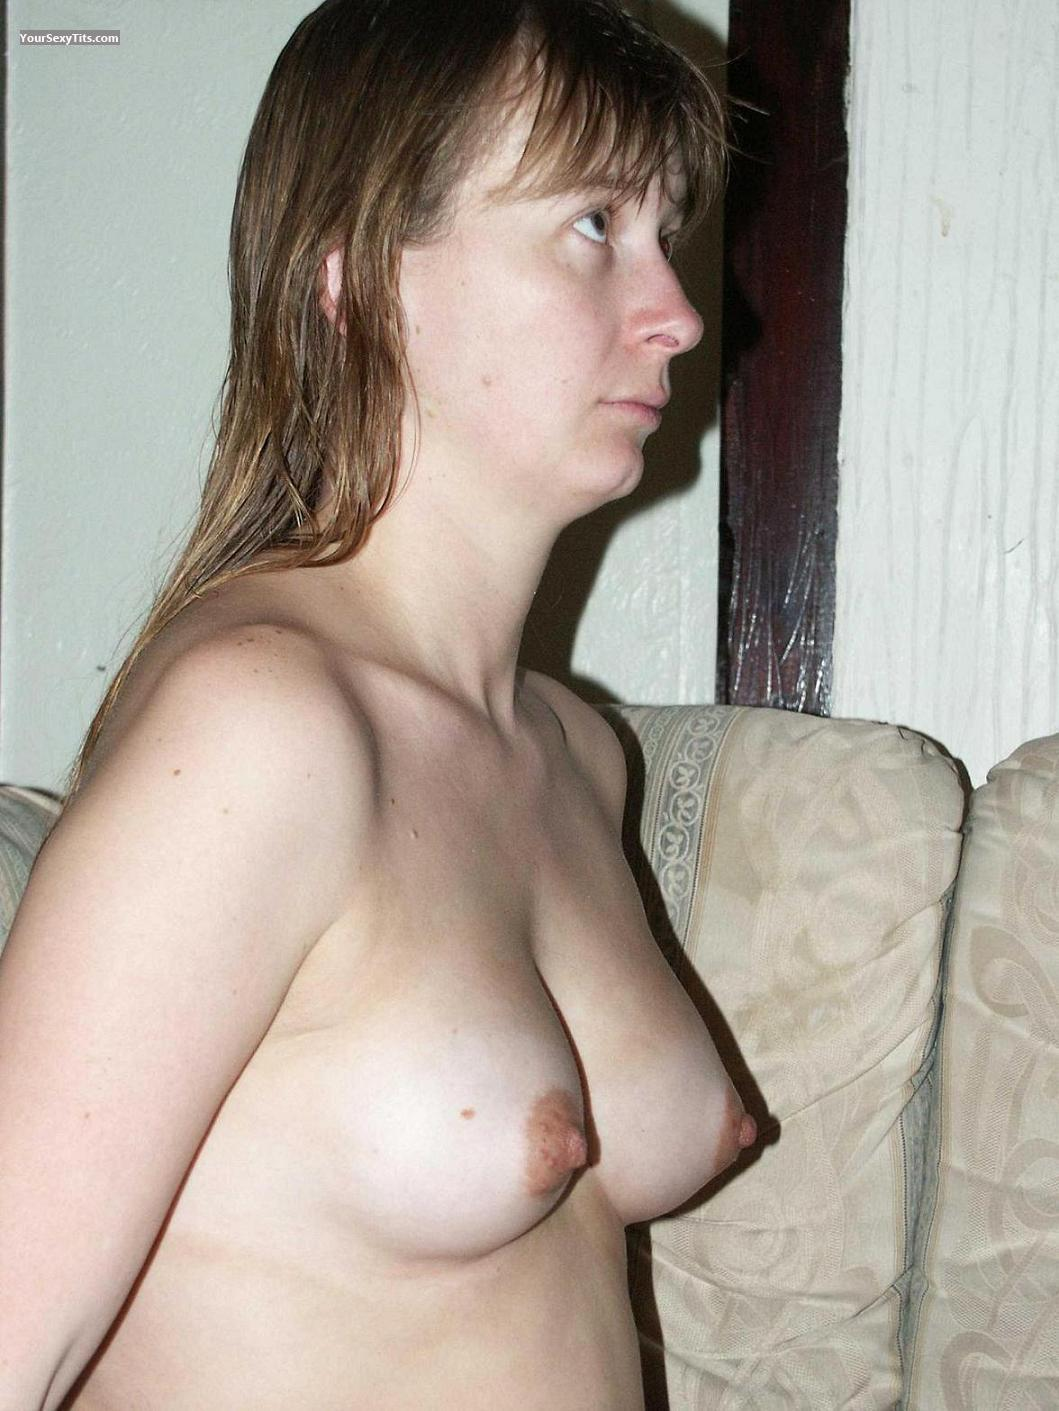 Tit Flash: Small Tits - Topless Cwoturmissing from United Kingdom